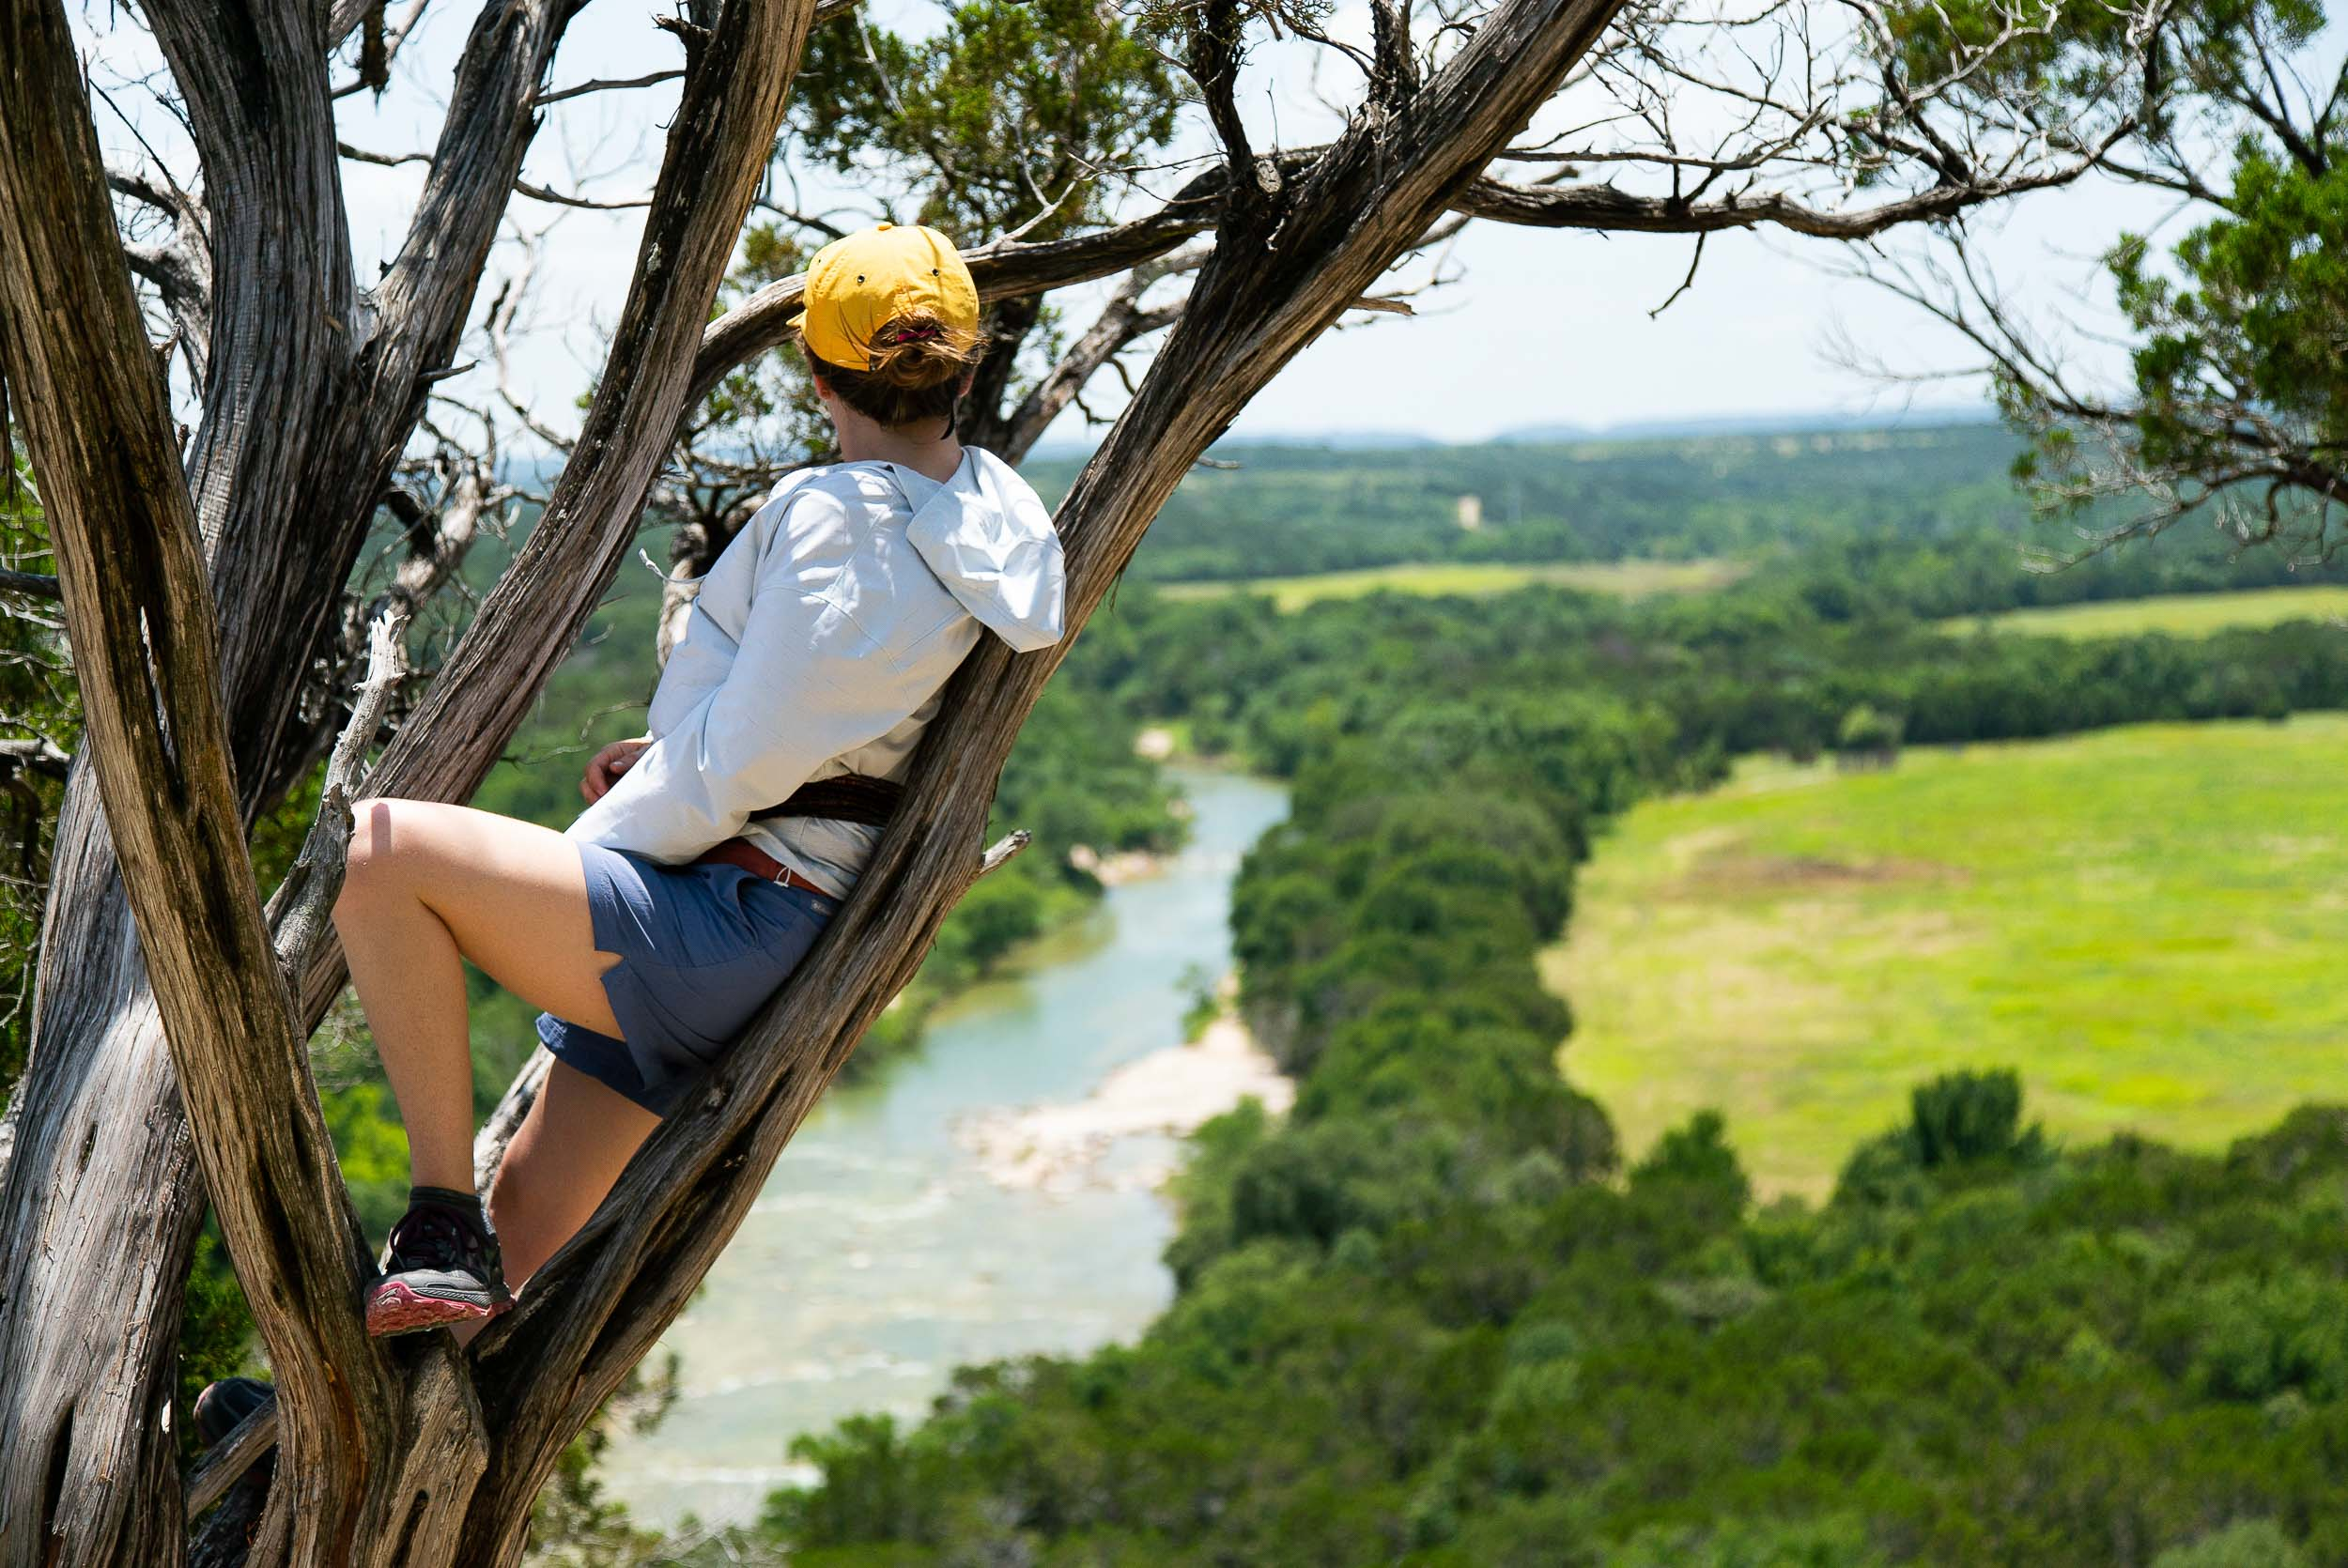 Taking in the view of the Paluxy River from a tree near the Overlook Trail at Dinosaur Valley State Park in Glen Rose, Texas by  Cameron Mosier .